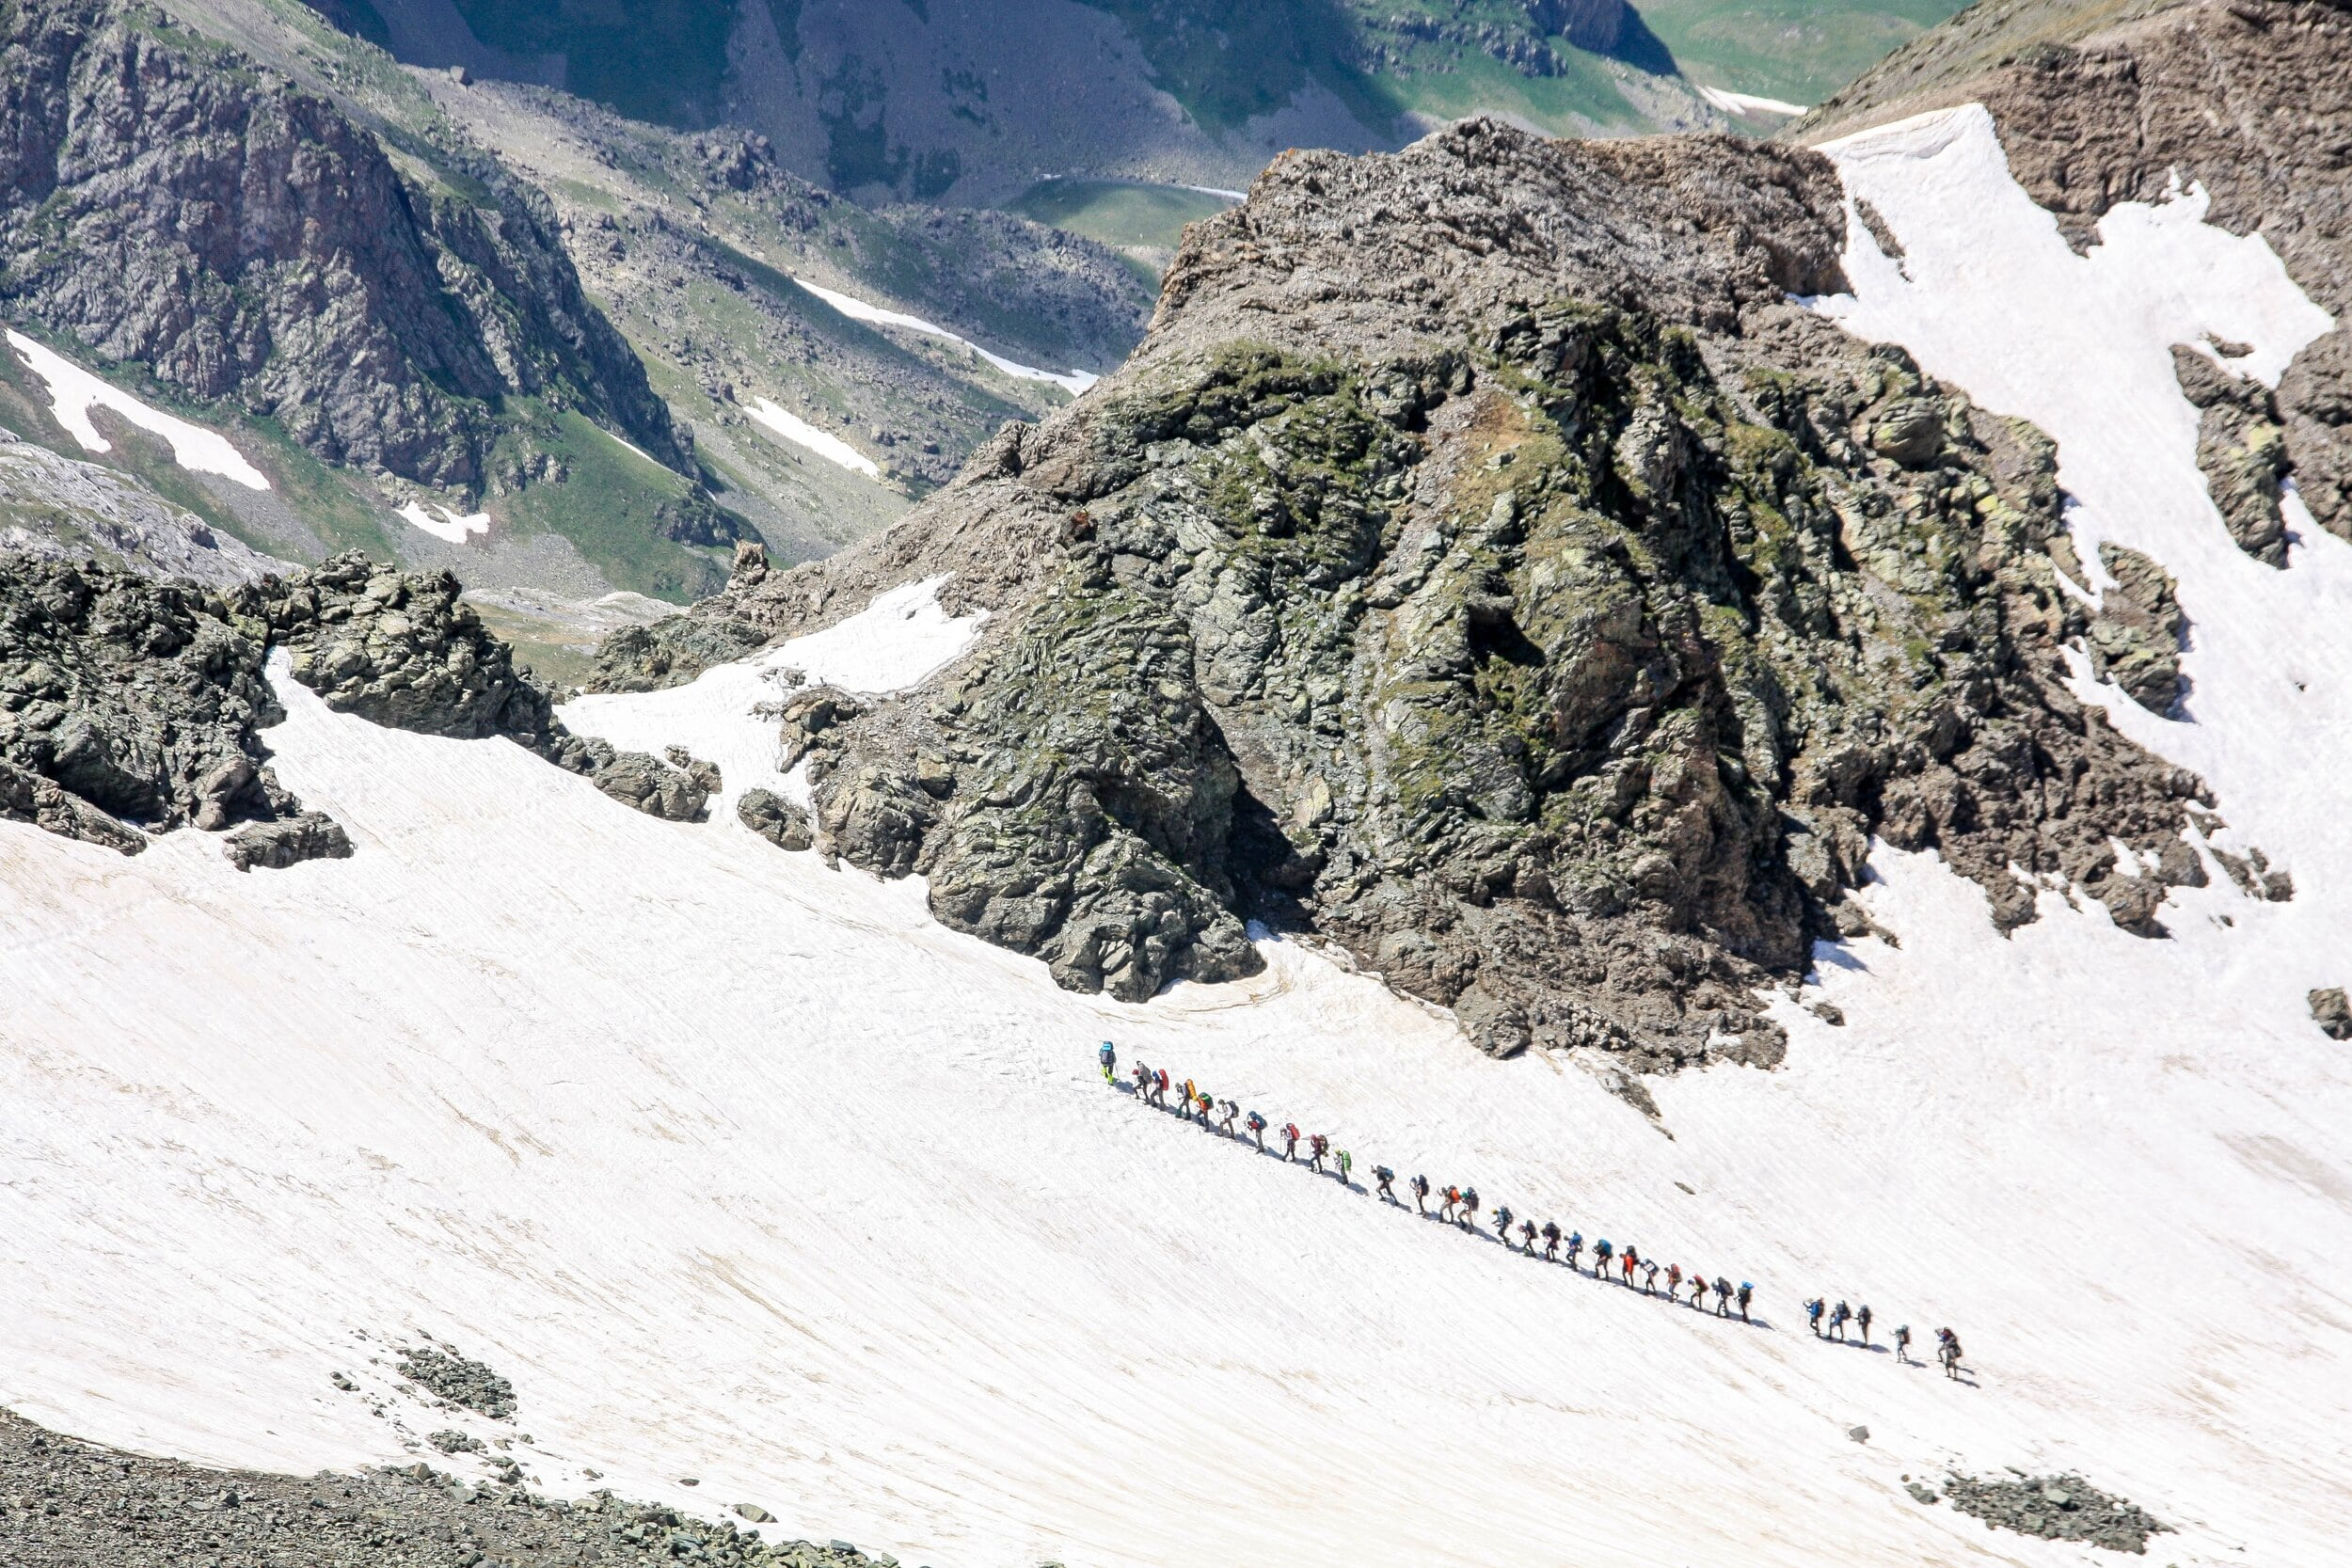 Snowy mountain with long line of hikers hiking up it